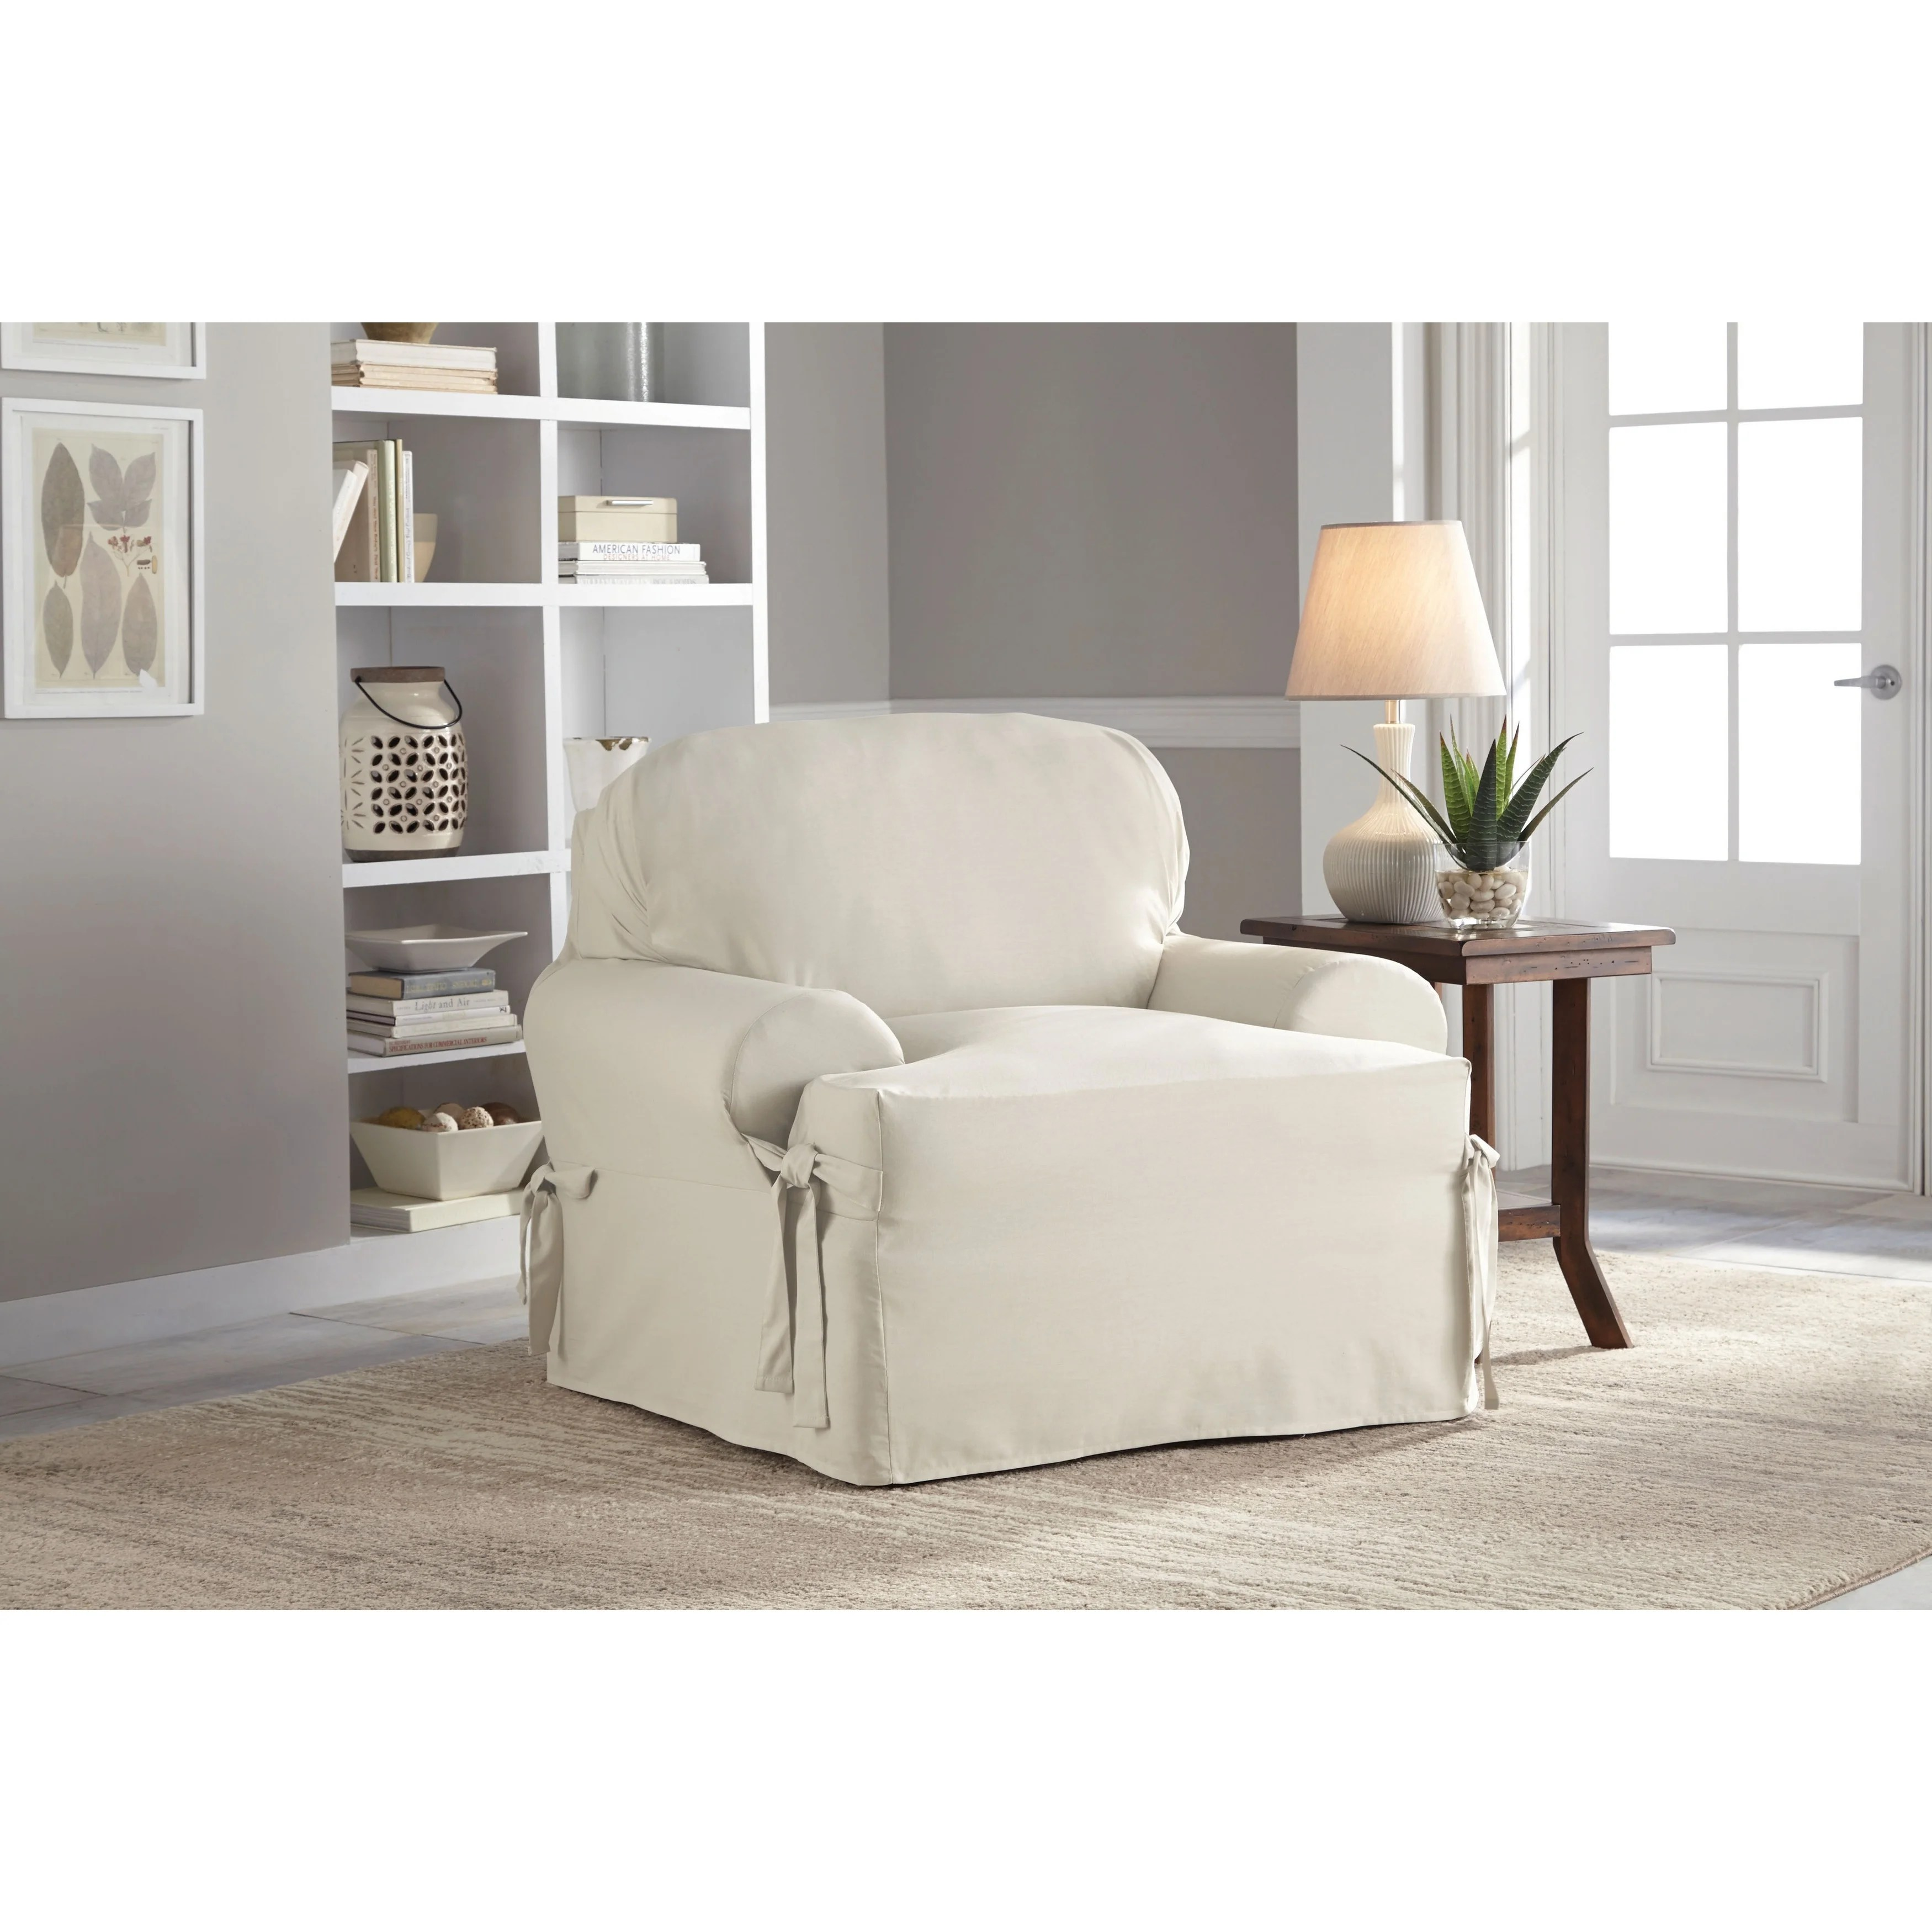 chair slipcover t cushion bedroom swivel shop tailor fit relaxed cotton duck